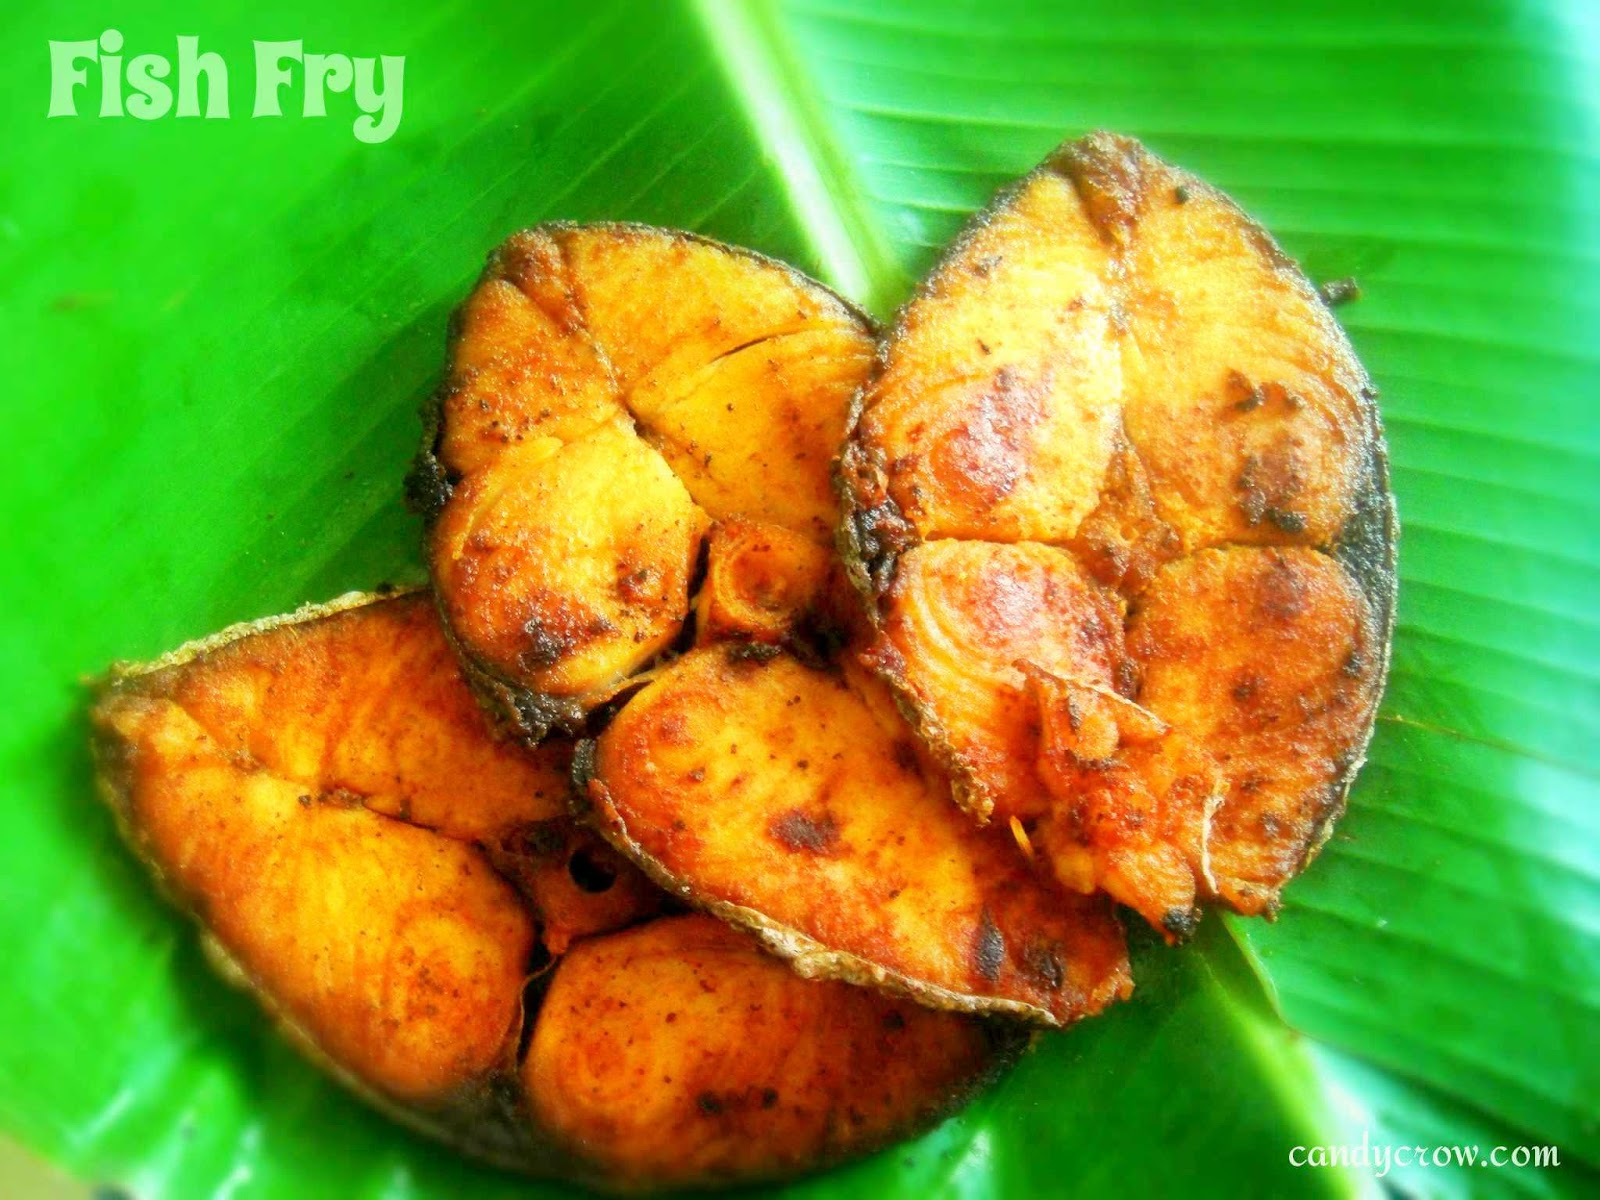 Fish fry south indian fish fry recipe candy crow top for Fish fry recipe indian